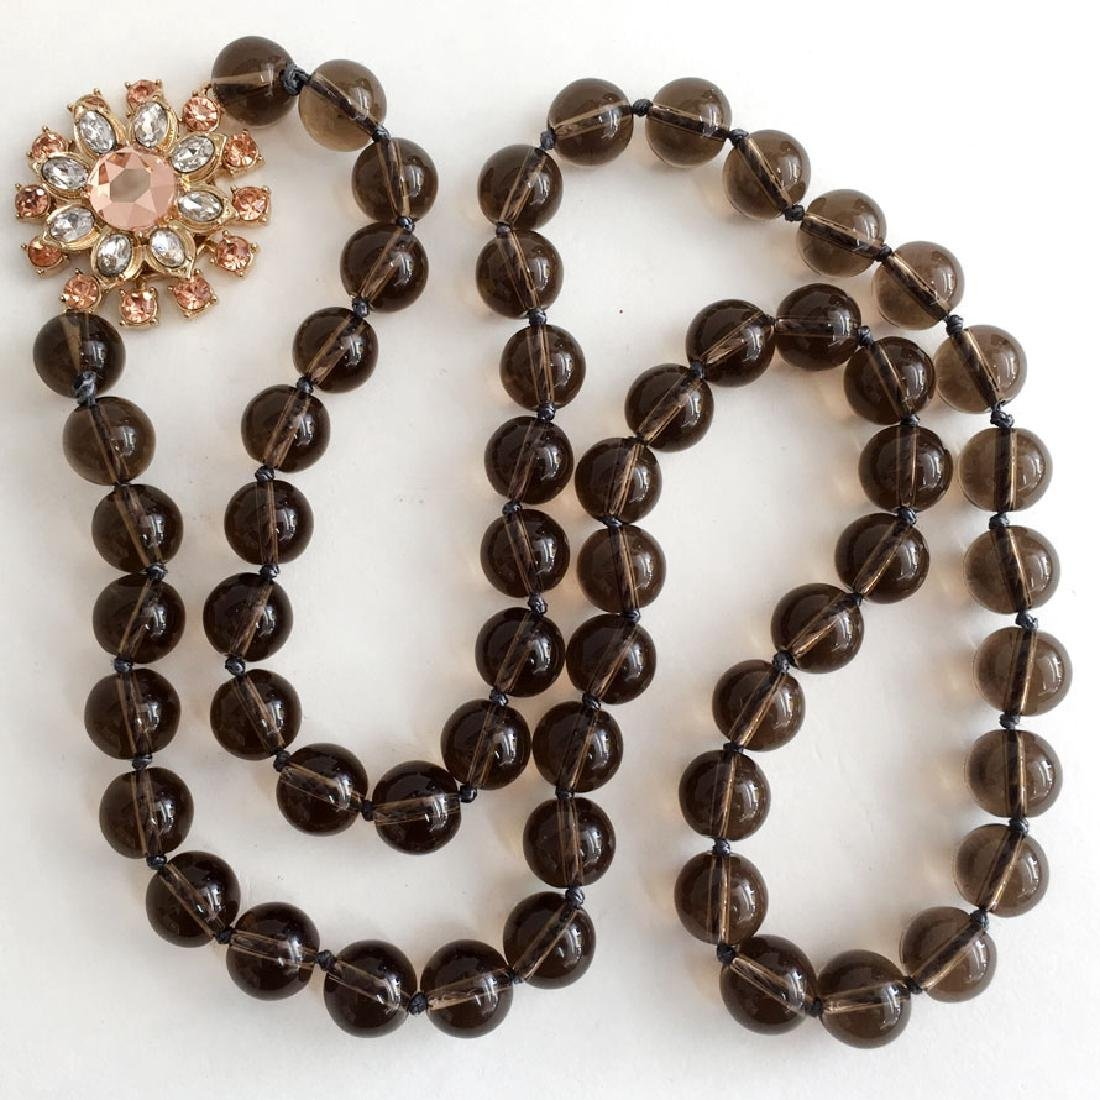 Smokey Quartz glass beads knotted necklace with gold